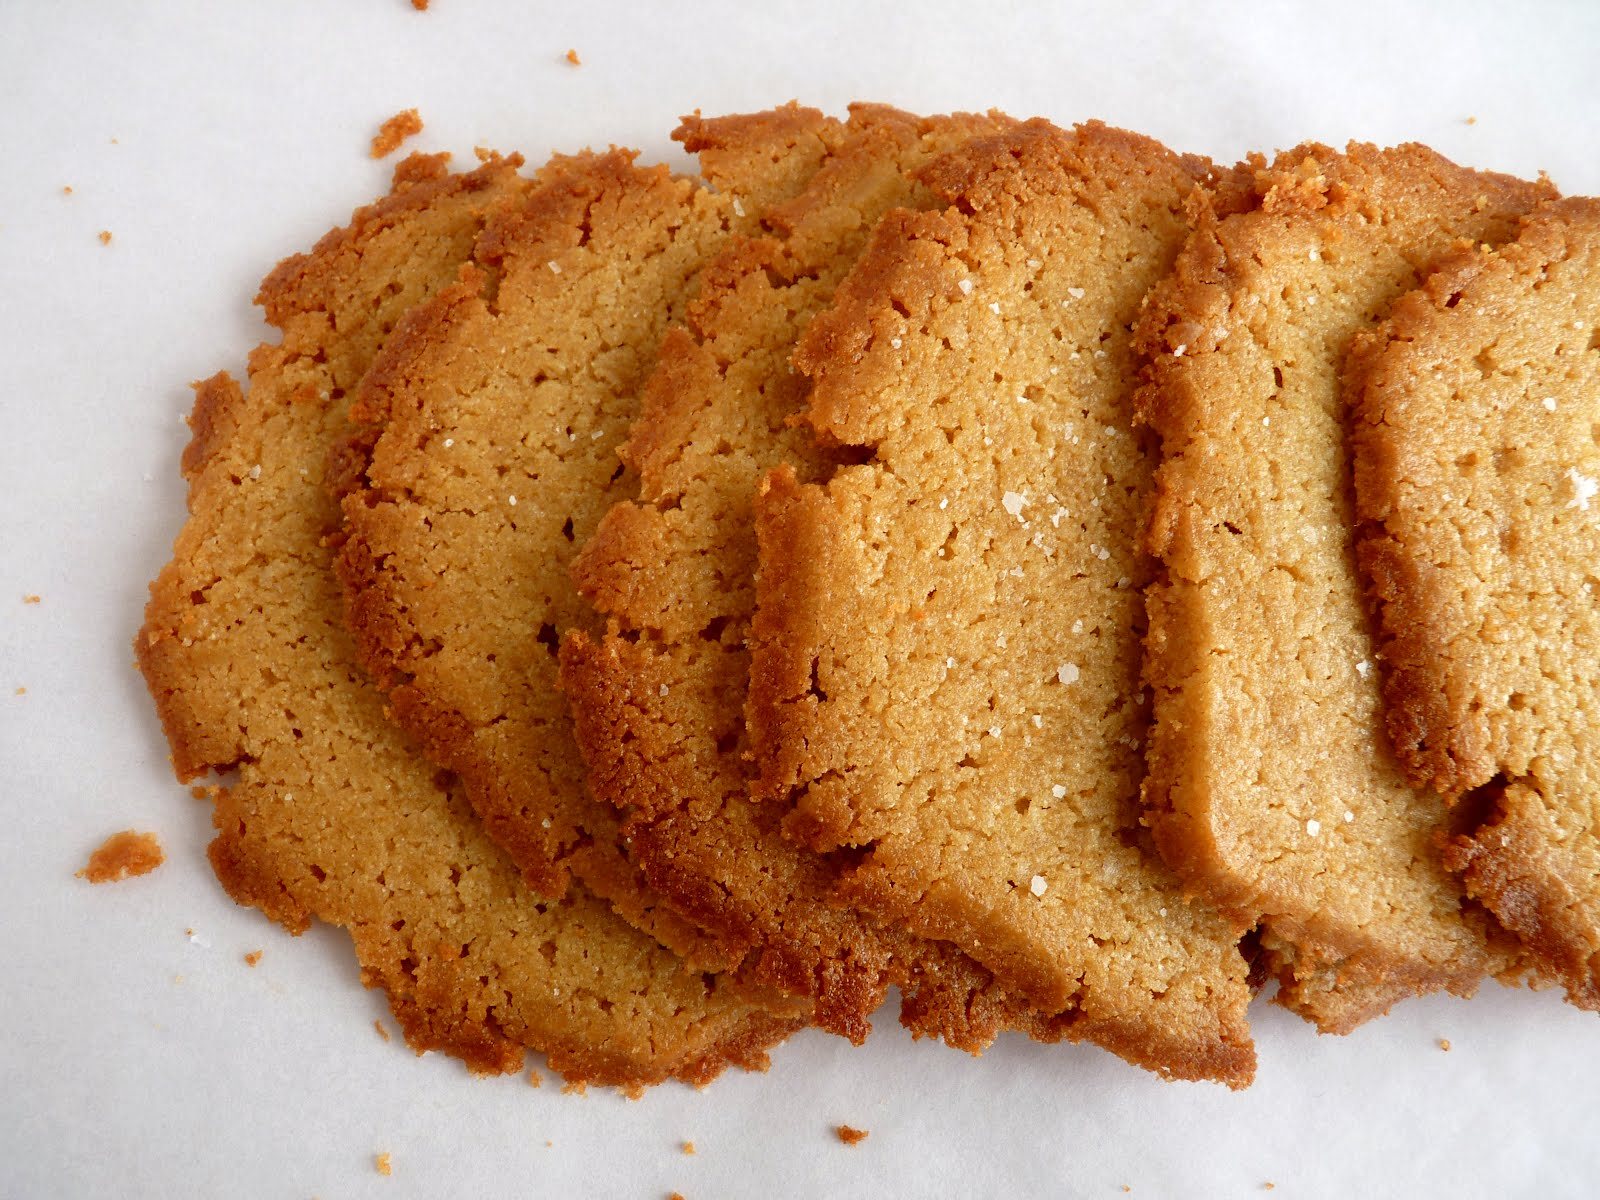 Pastry studio brown sugar semolina cookies with sea salt friday april 27 2012 forumfinder Choice Image